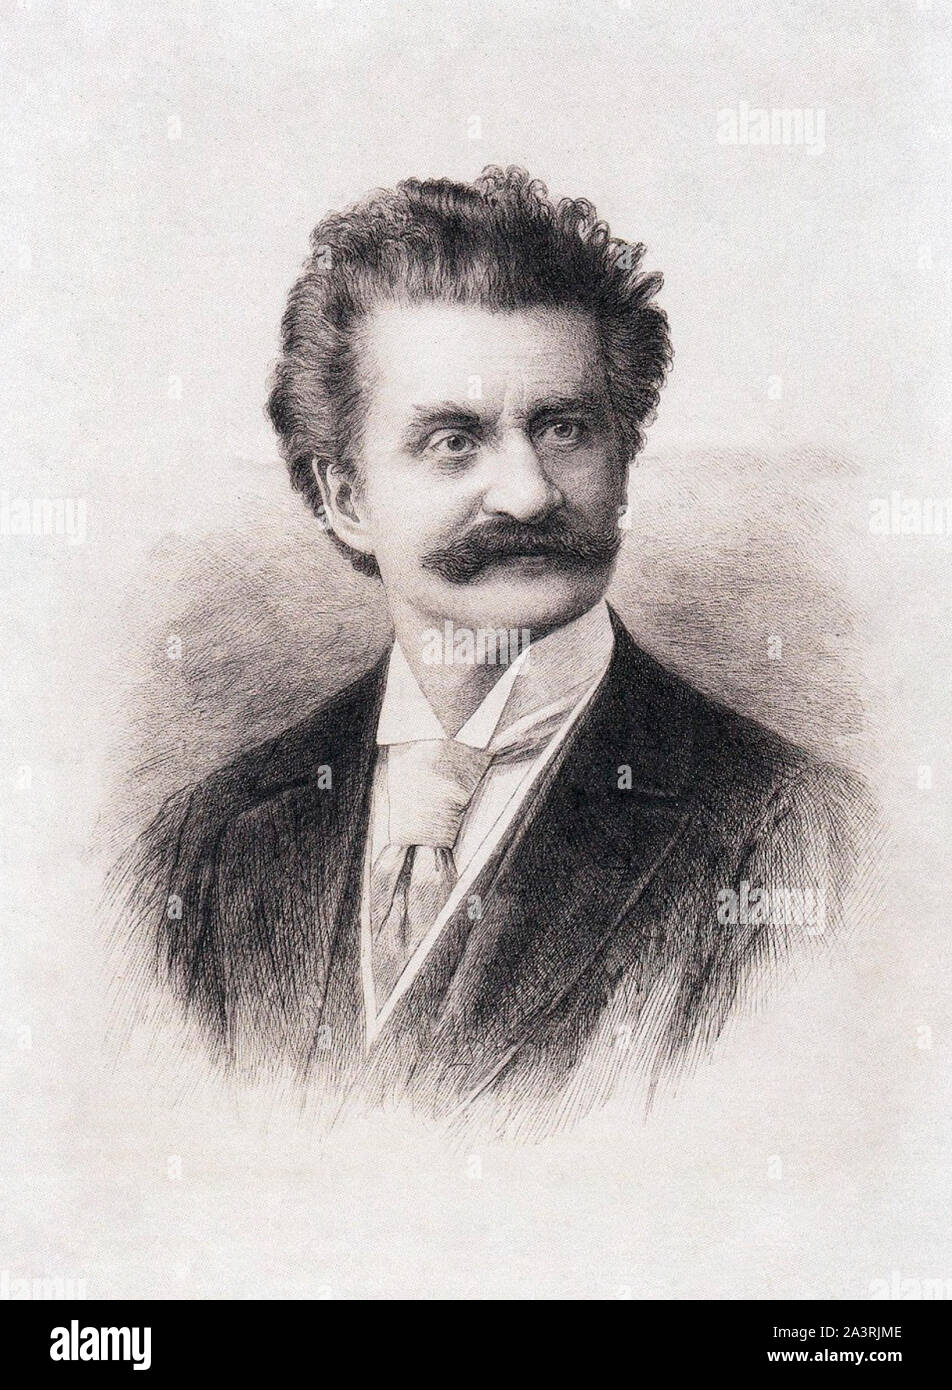 Johann Strauss II (1825 – 1899), also known as Johann Strauss Jr., the Younger, the Son, son of Johann Strauss I, was an Austrian composer of light mu Stock Photo